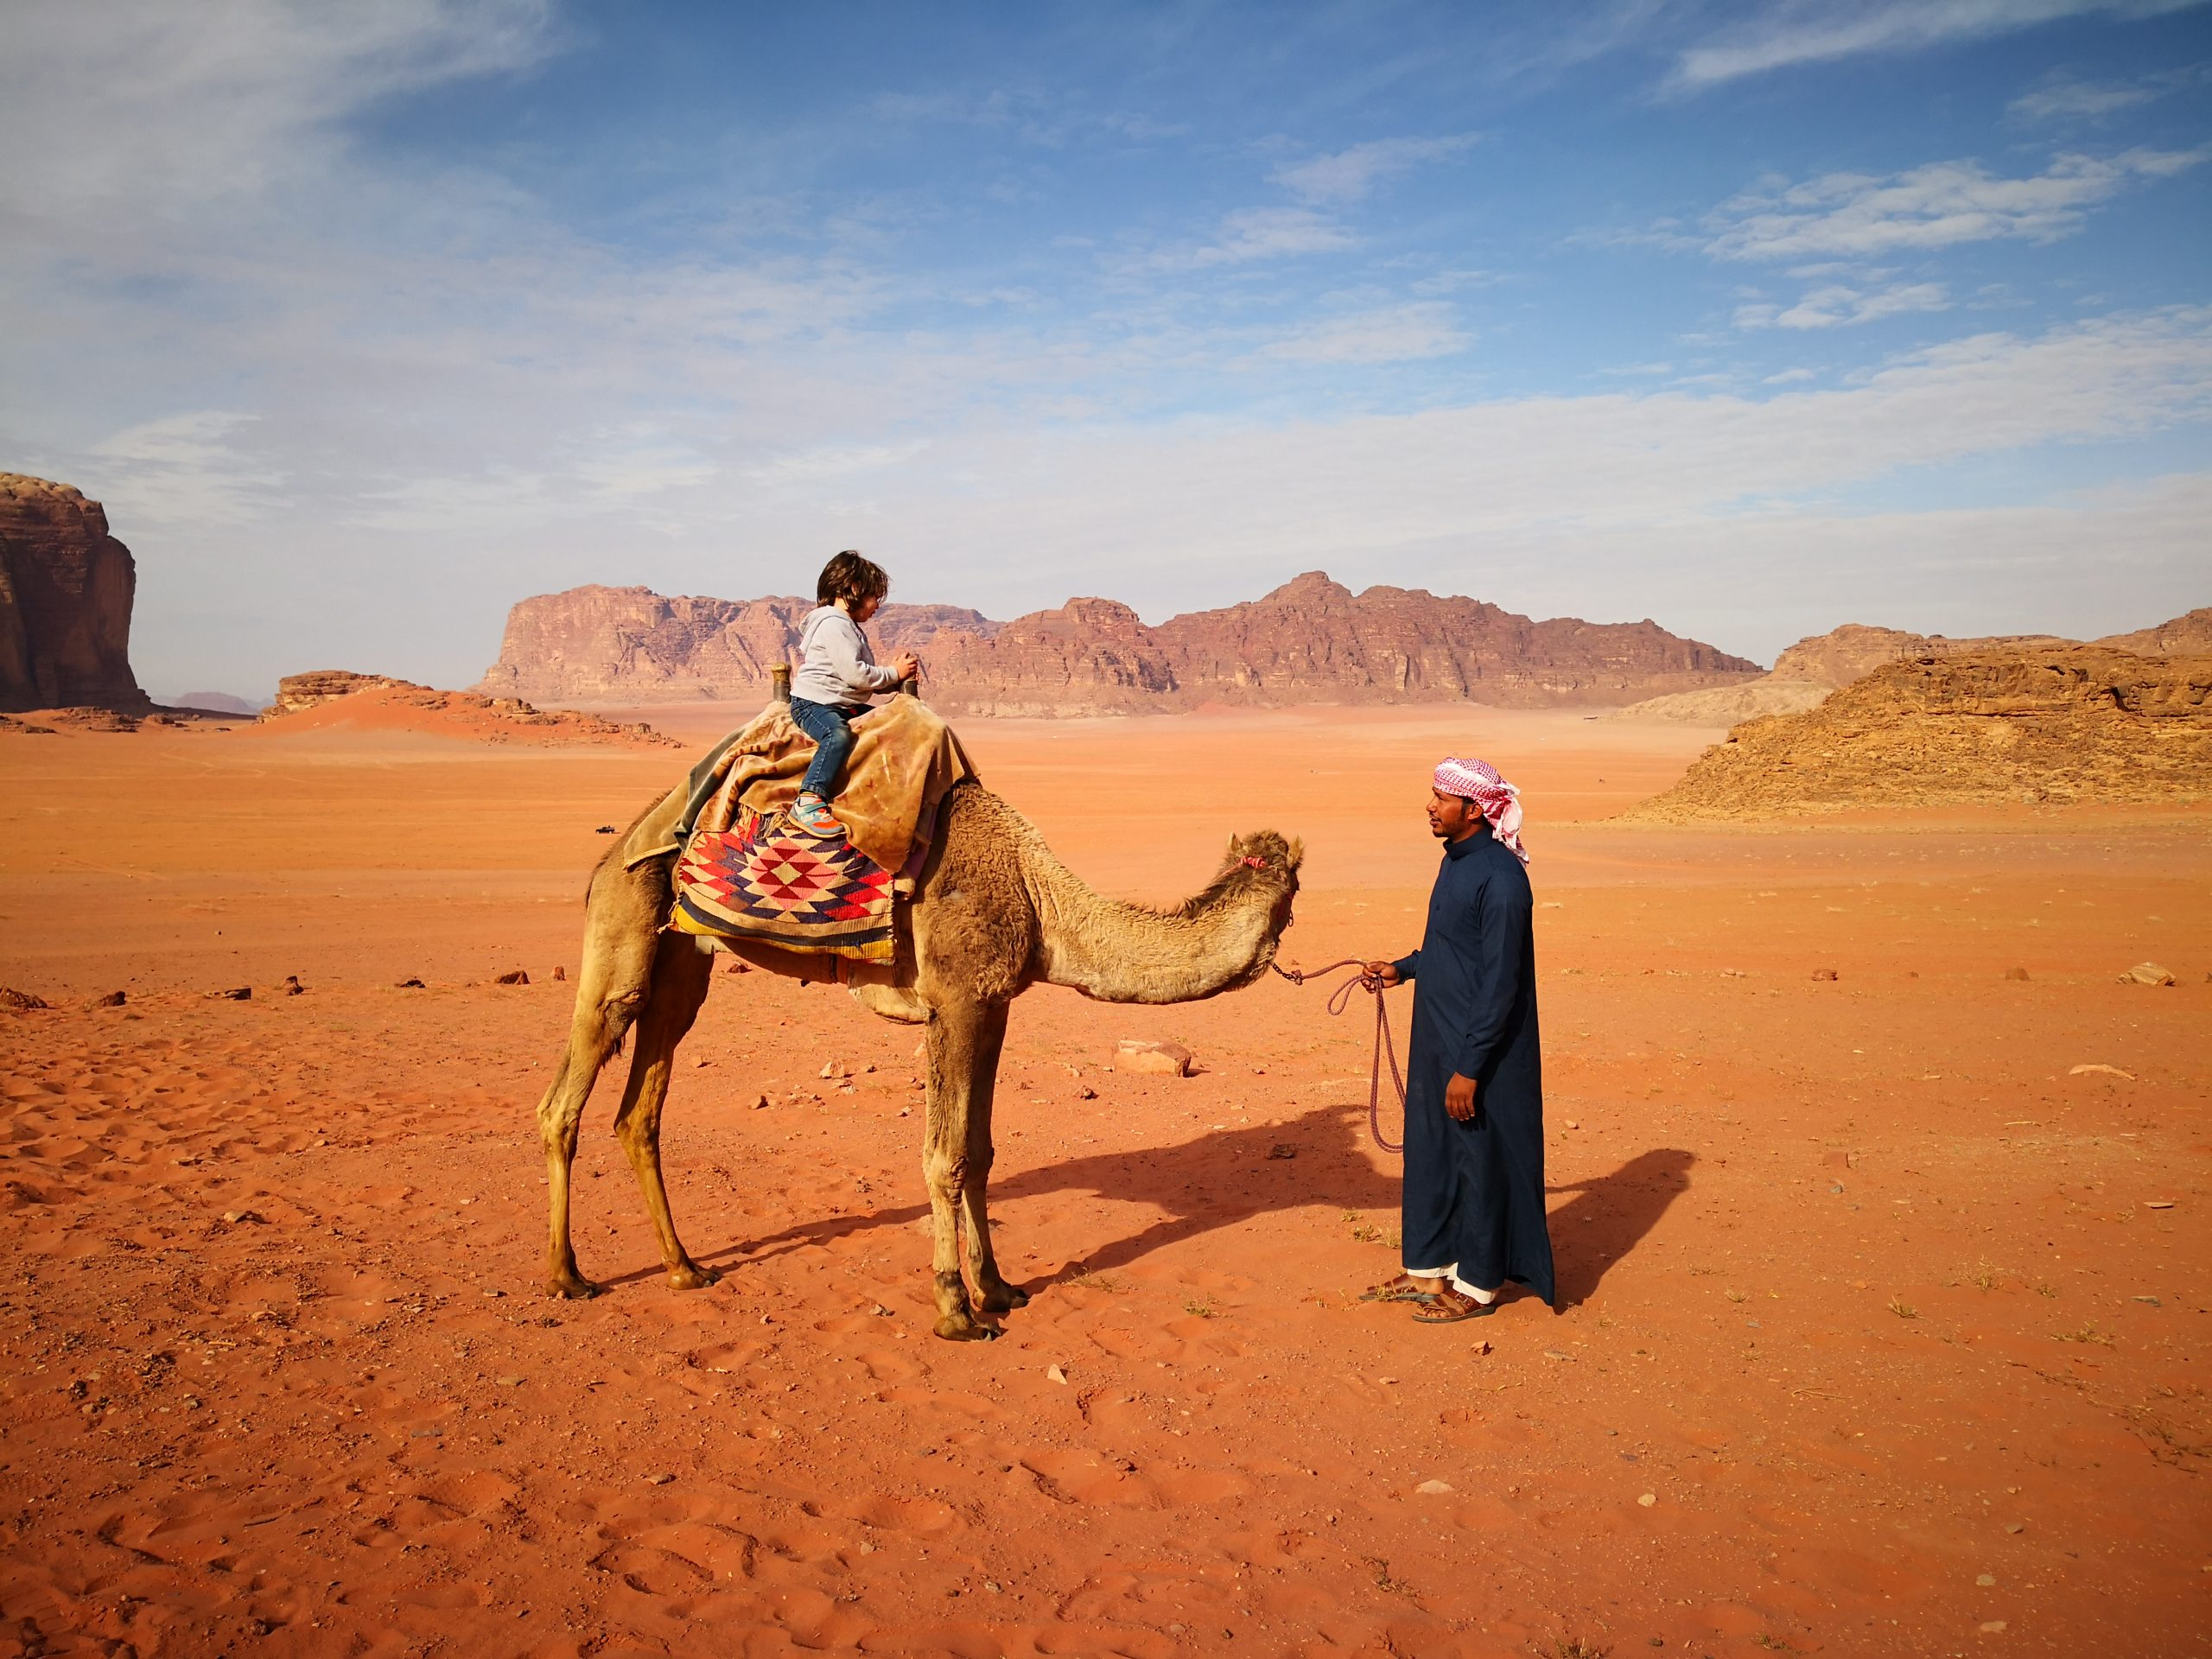 Child on Camel with Bedouin in Wadi Rum Jordan